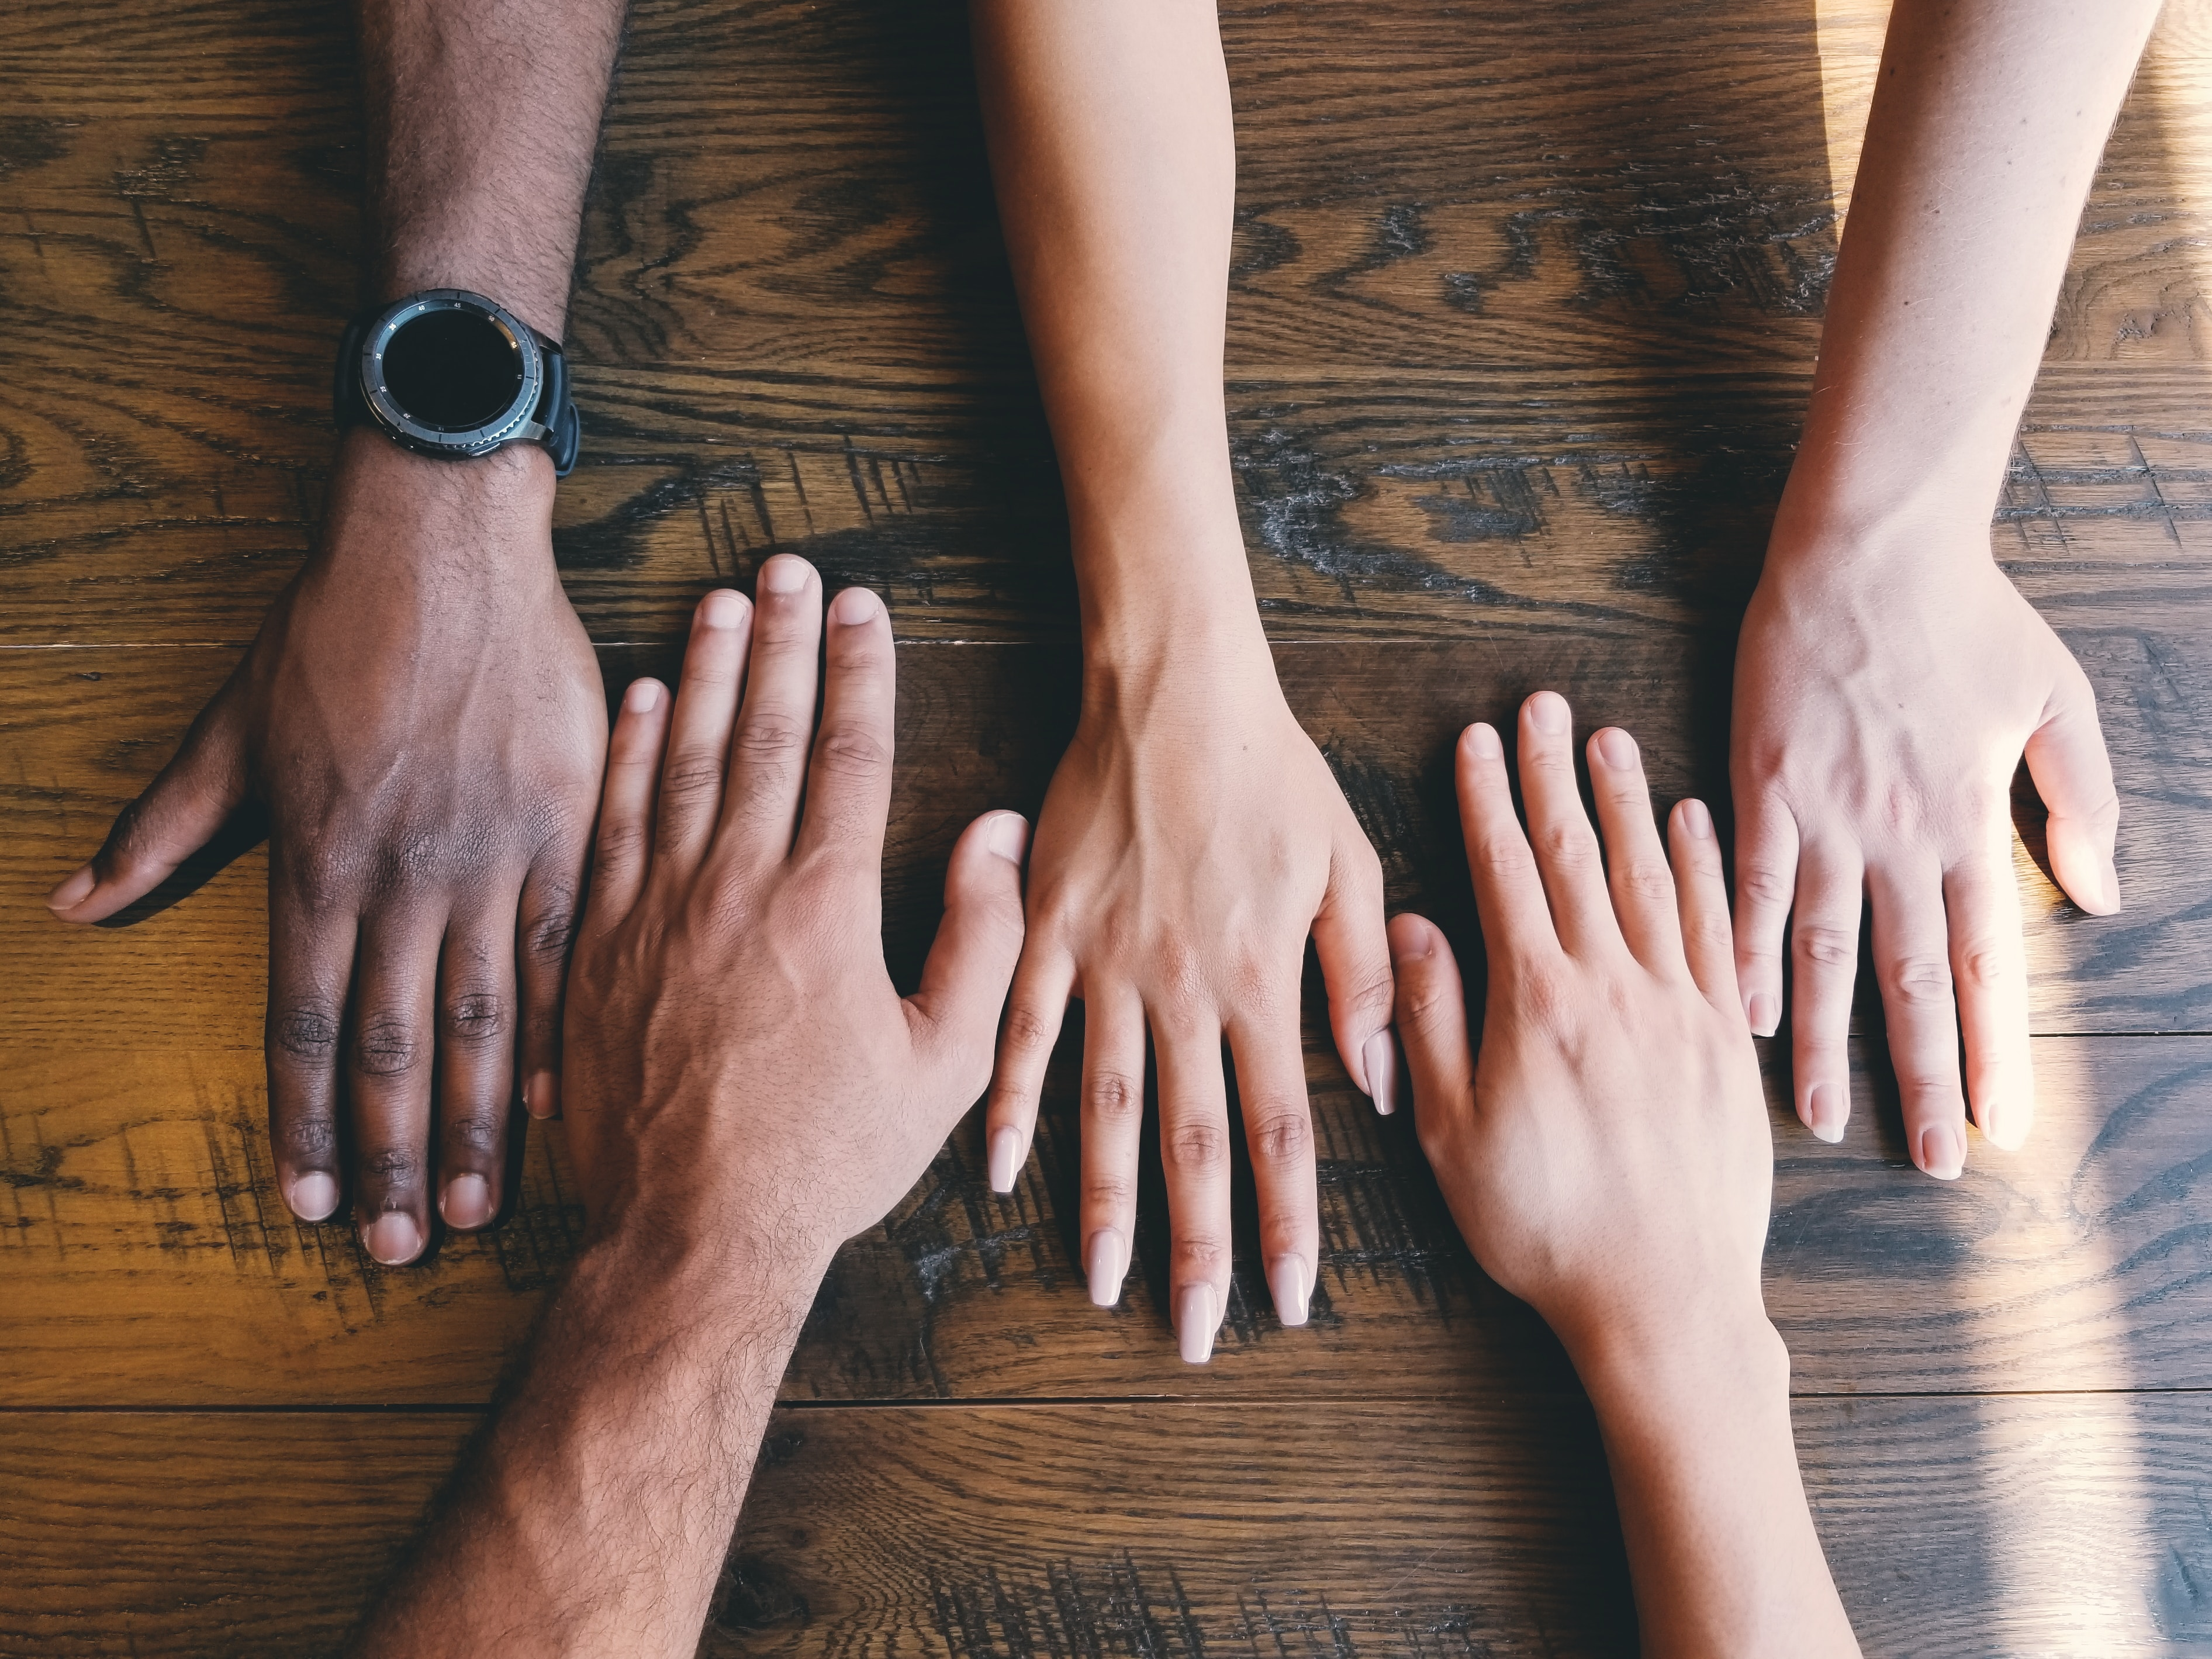 community outreach depends the relationship between different generations